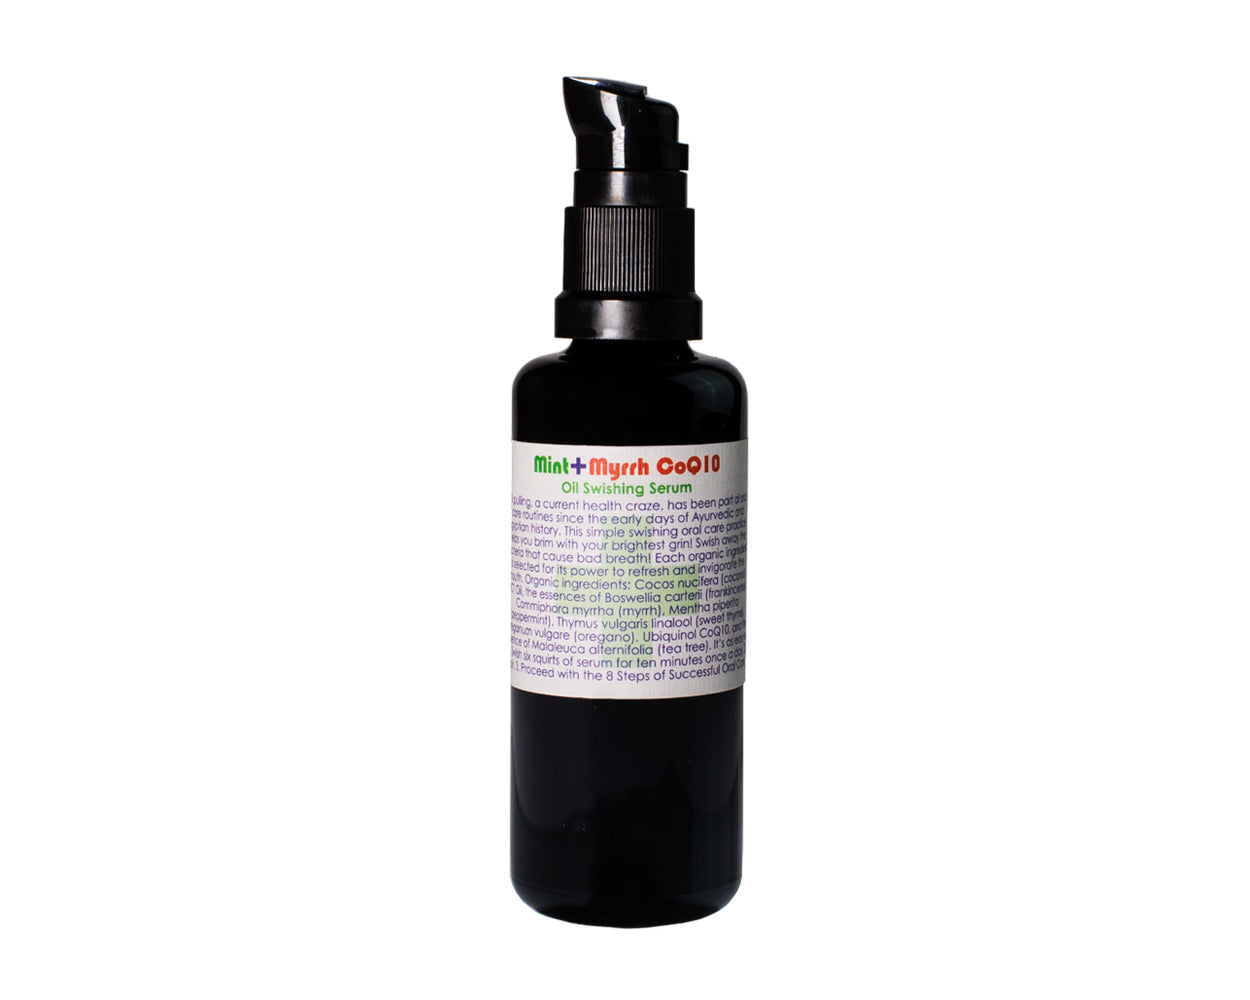 Mint + Myrrh Oil Swishing Serum